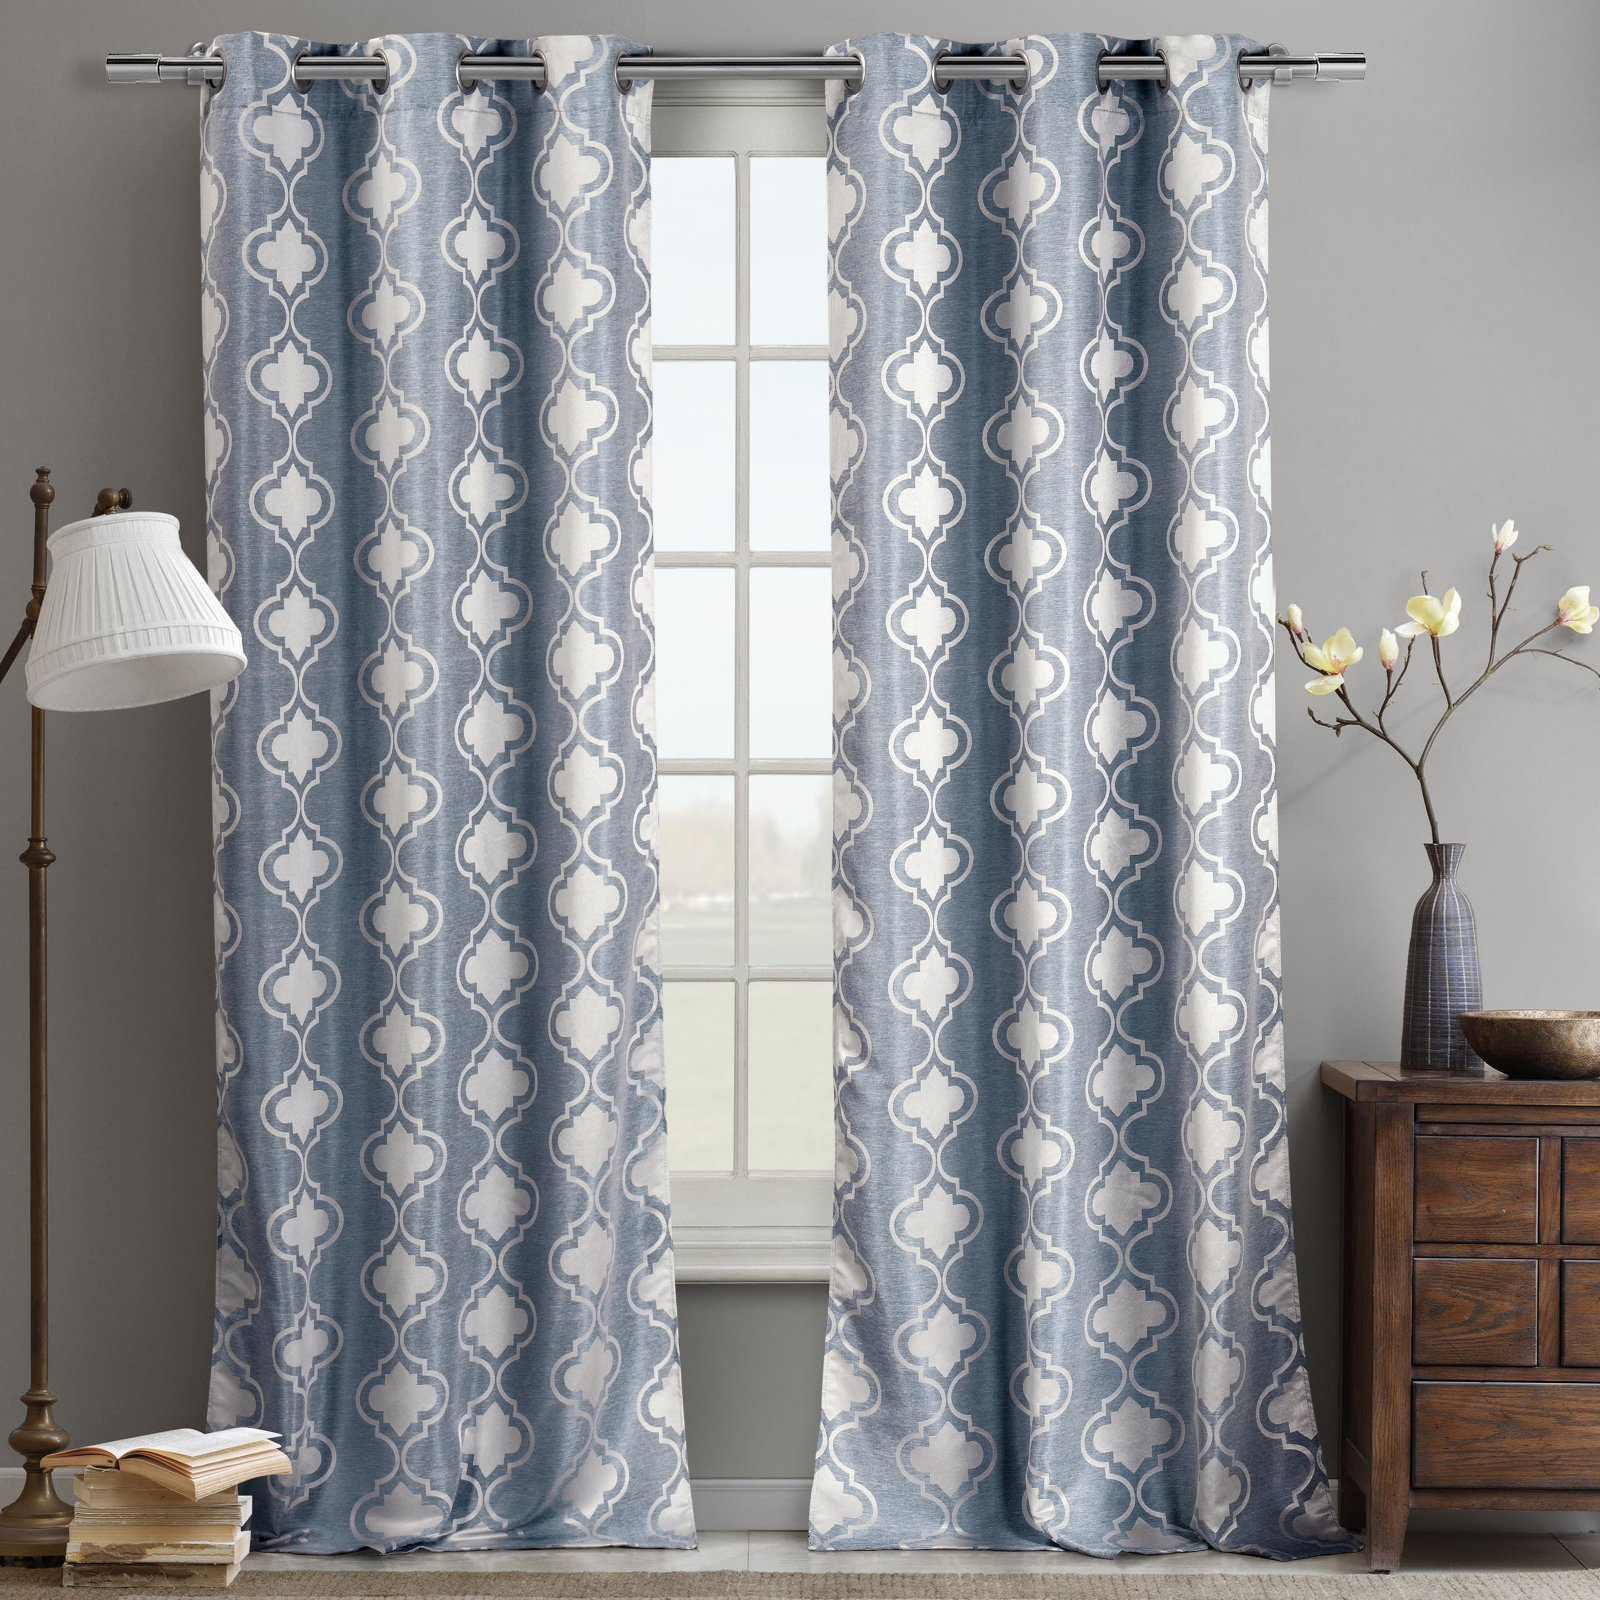 DR International Crystina Jacquard Geometric Semi-Sheer Grommet Curtain Panels (Set of 2)